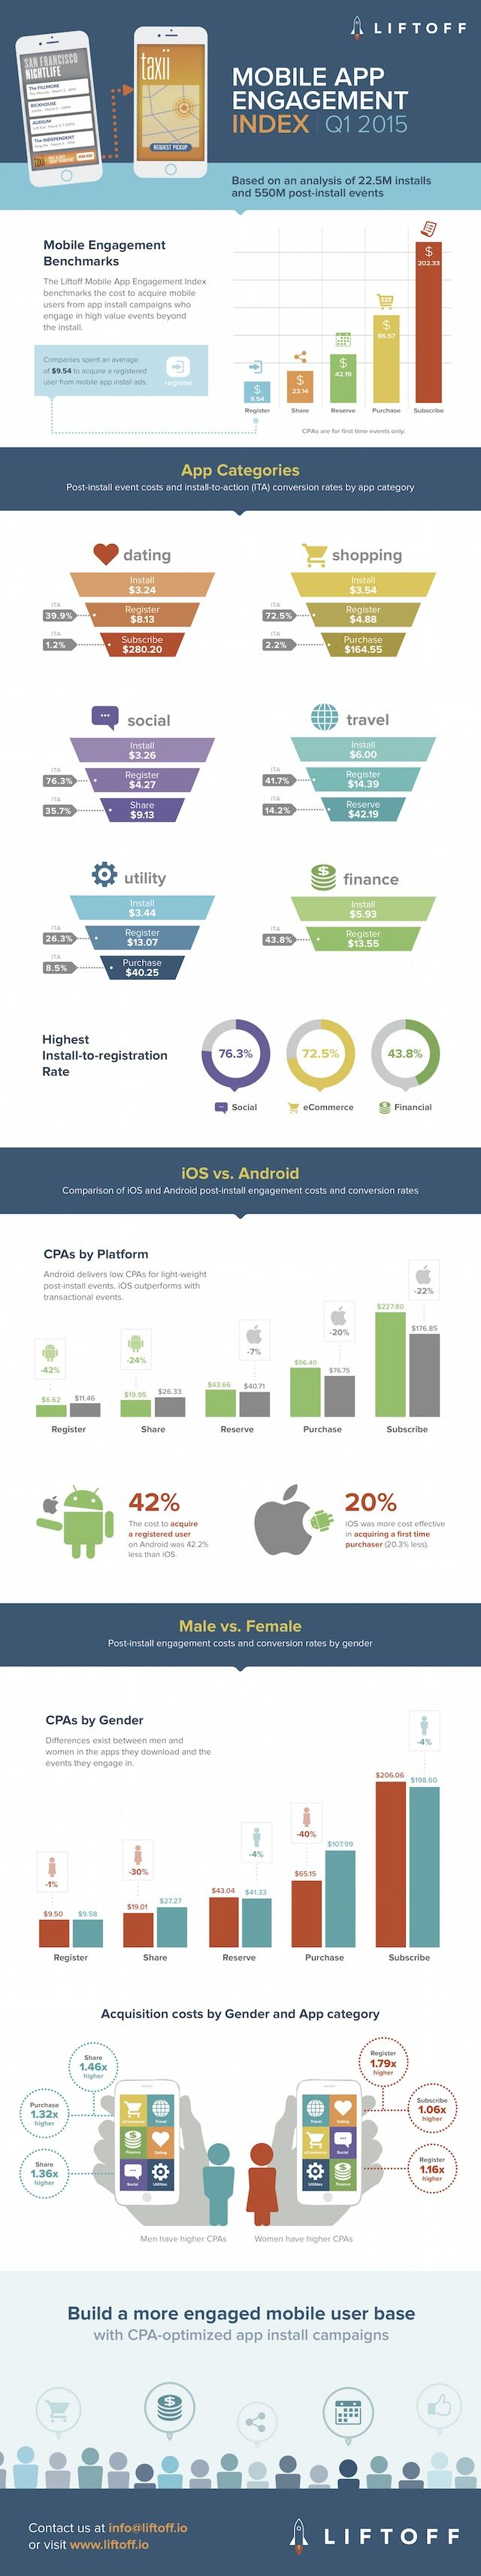 Very nicely done #infographic about #MobileEngagement with tons of data and great design.